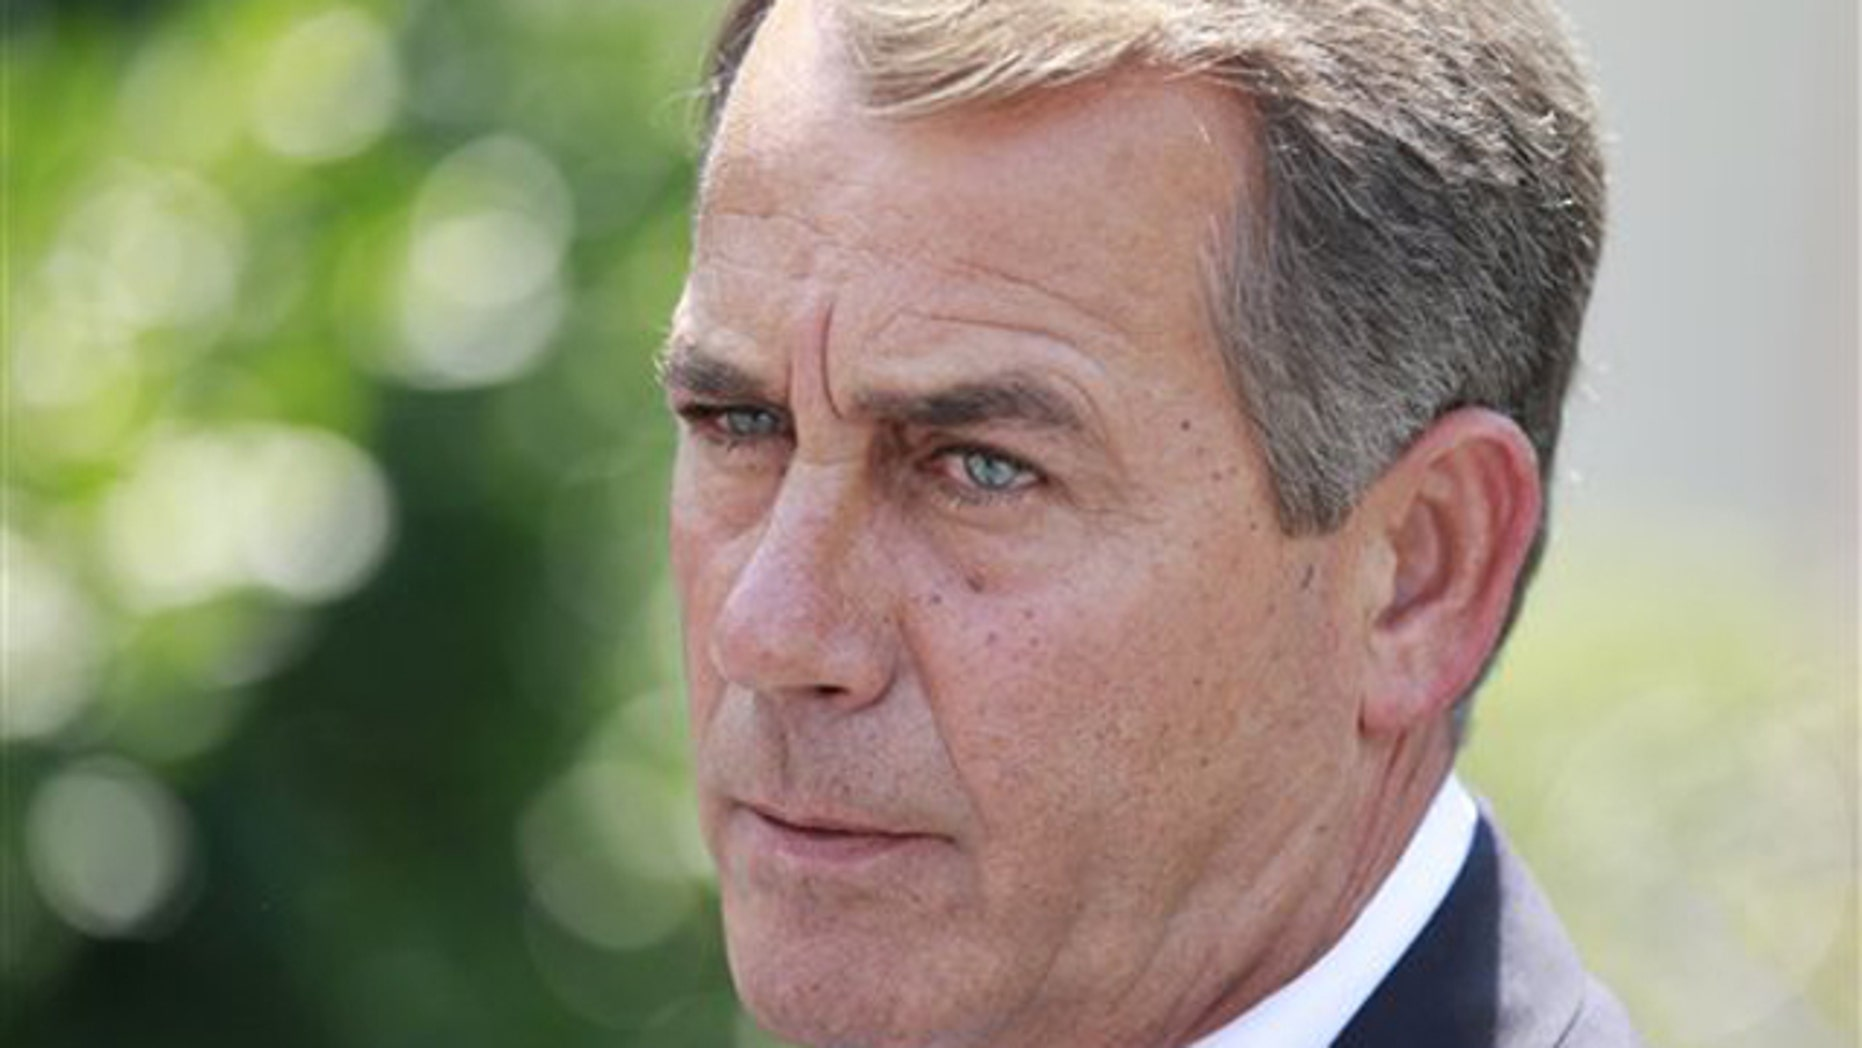 In this June 10 photo, House Minority Leader John Boehner speaks to reporters outside the White House in Washington following a meeting with President Obama. (AP Photo)